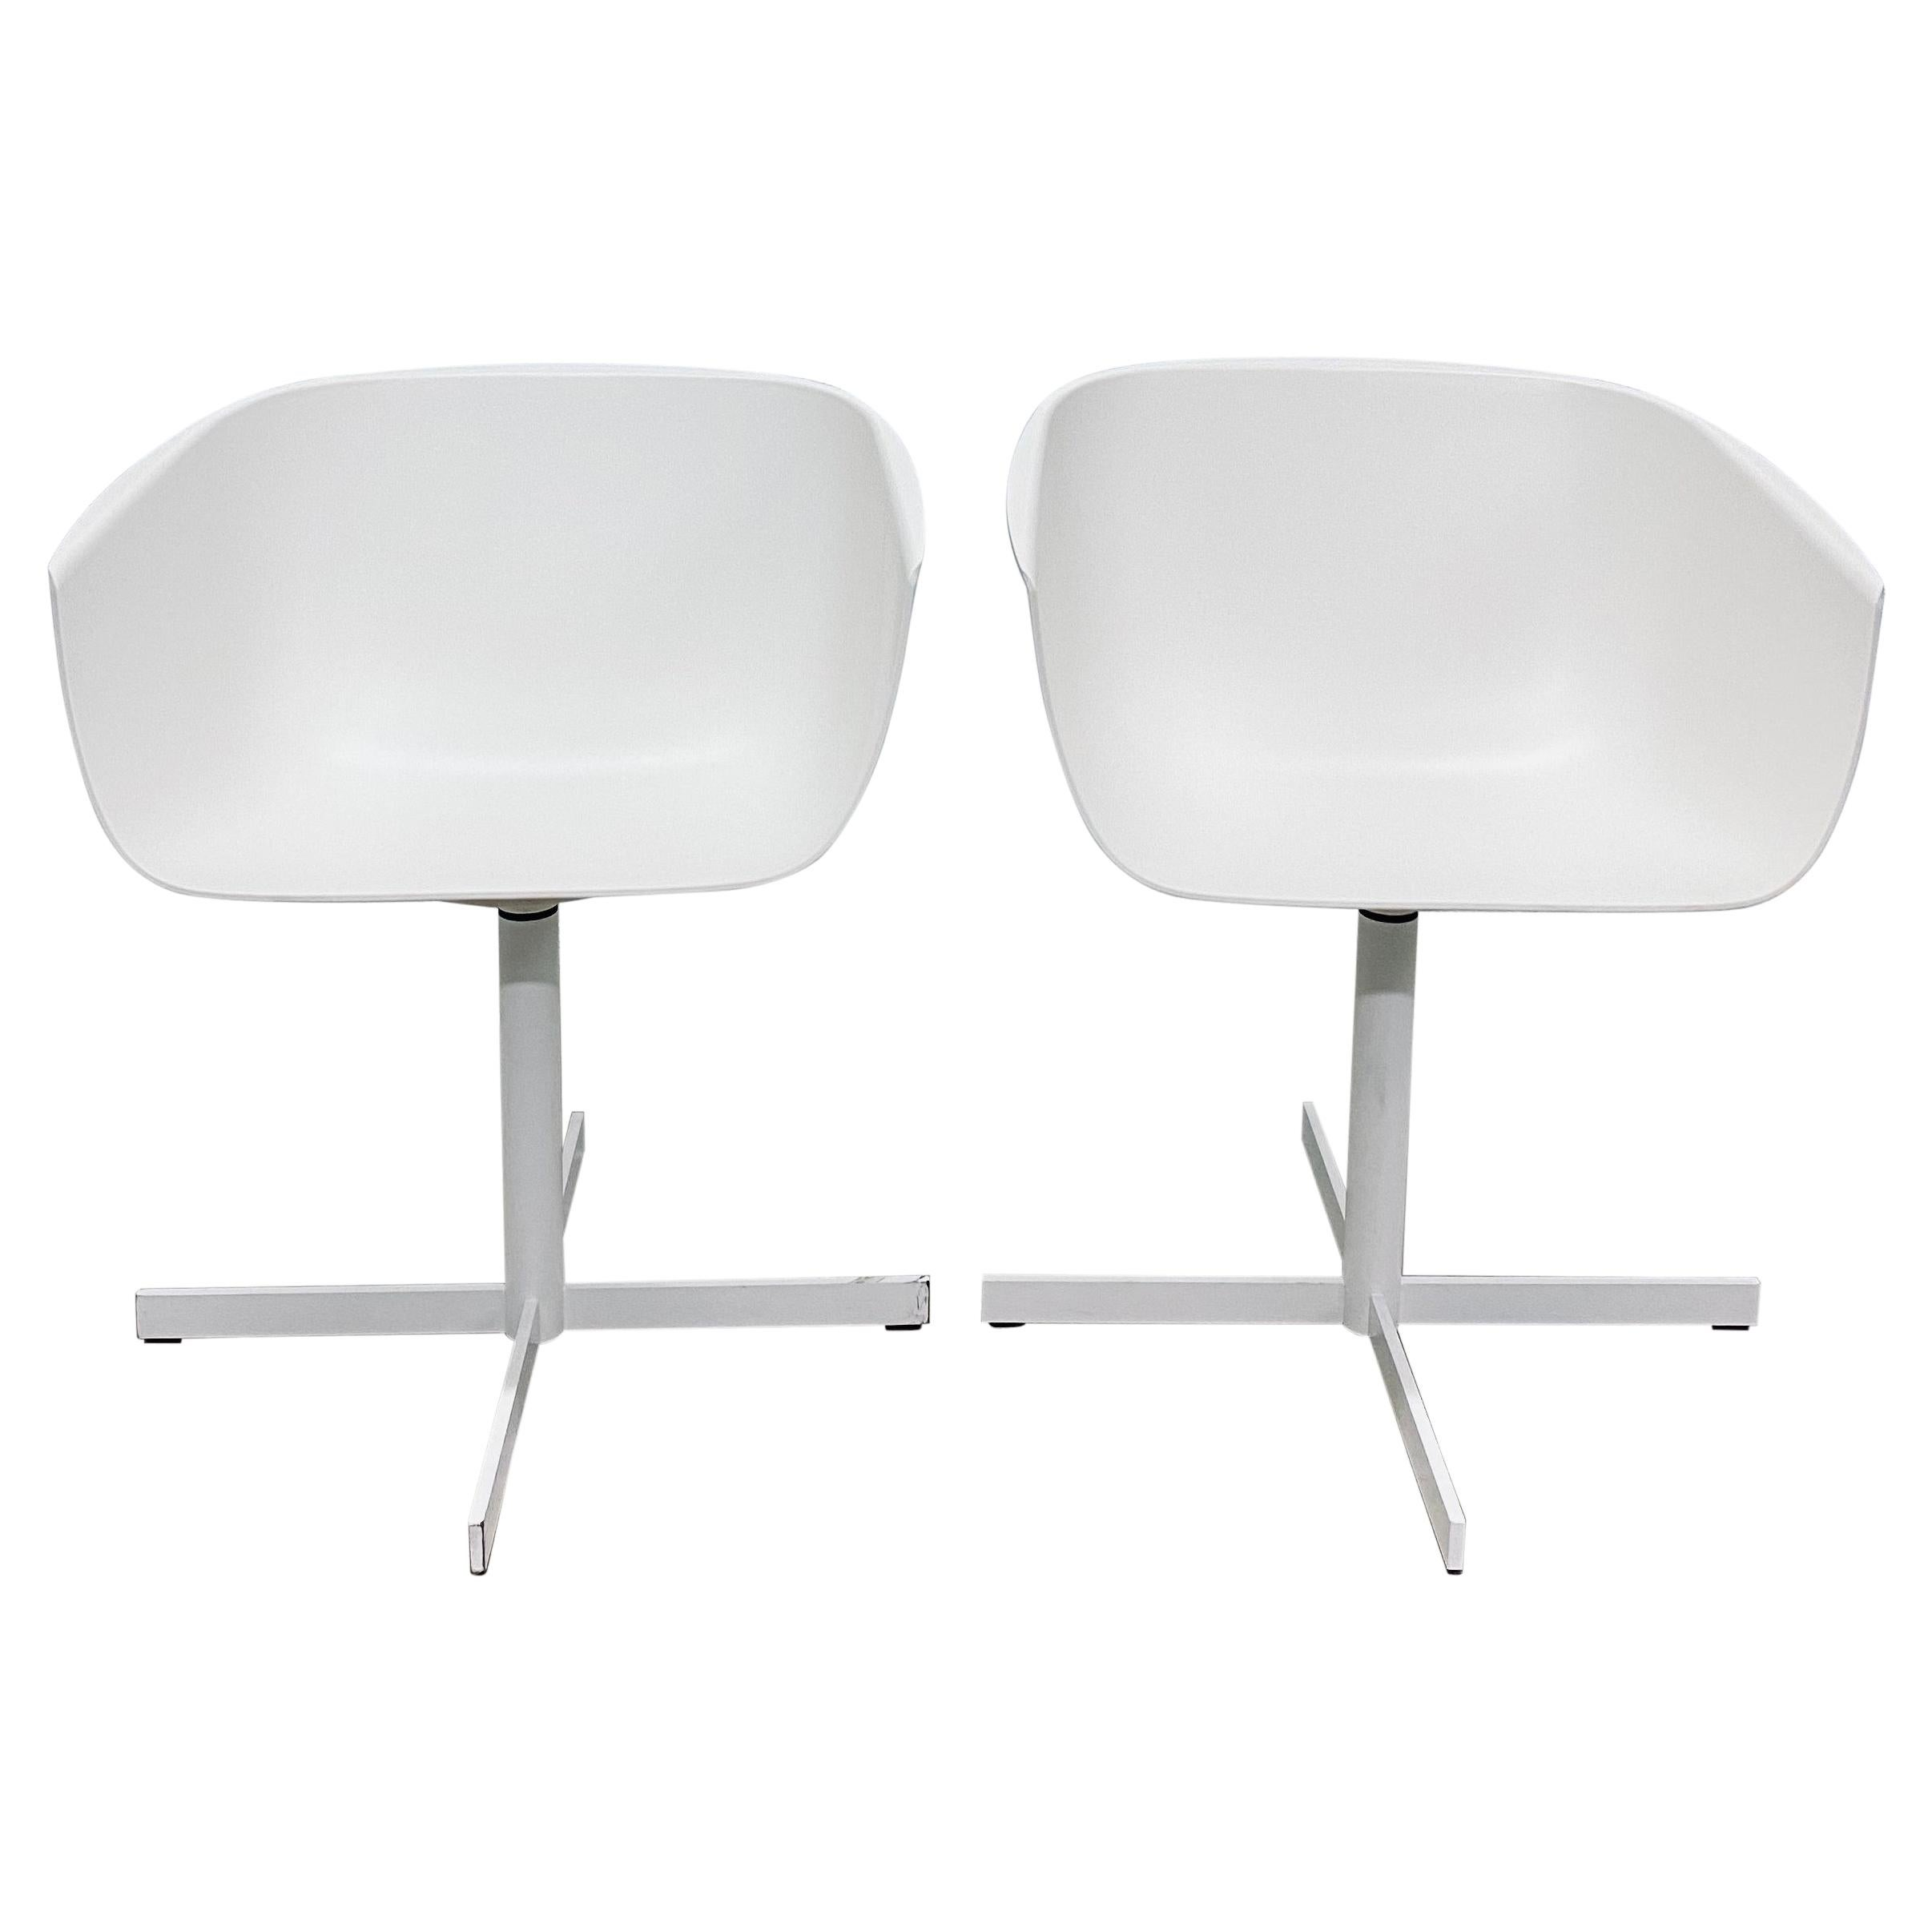 """Carlo Colombo Postmodern """"Strip"""" Matte White Swivel Chairs for Poliform, a Pair"""